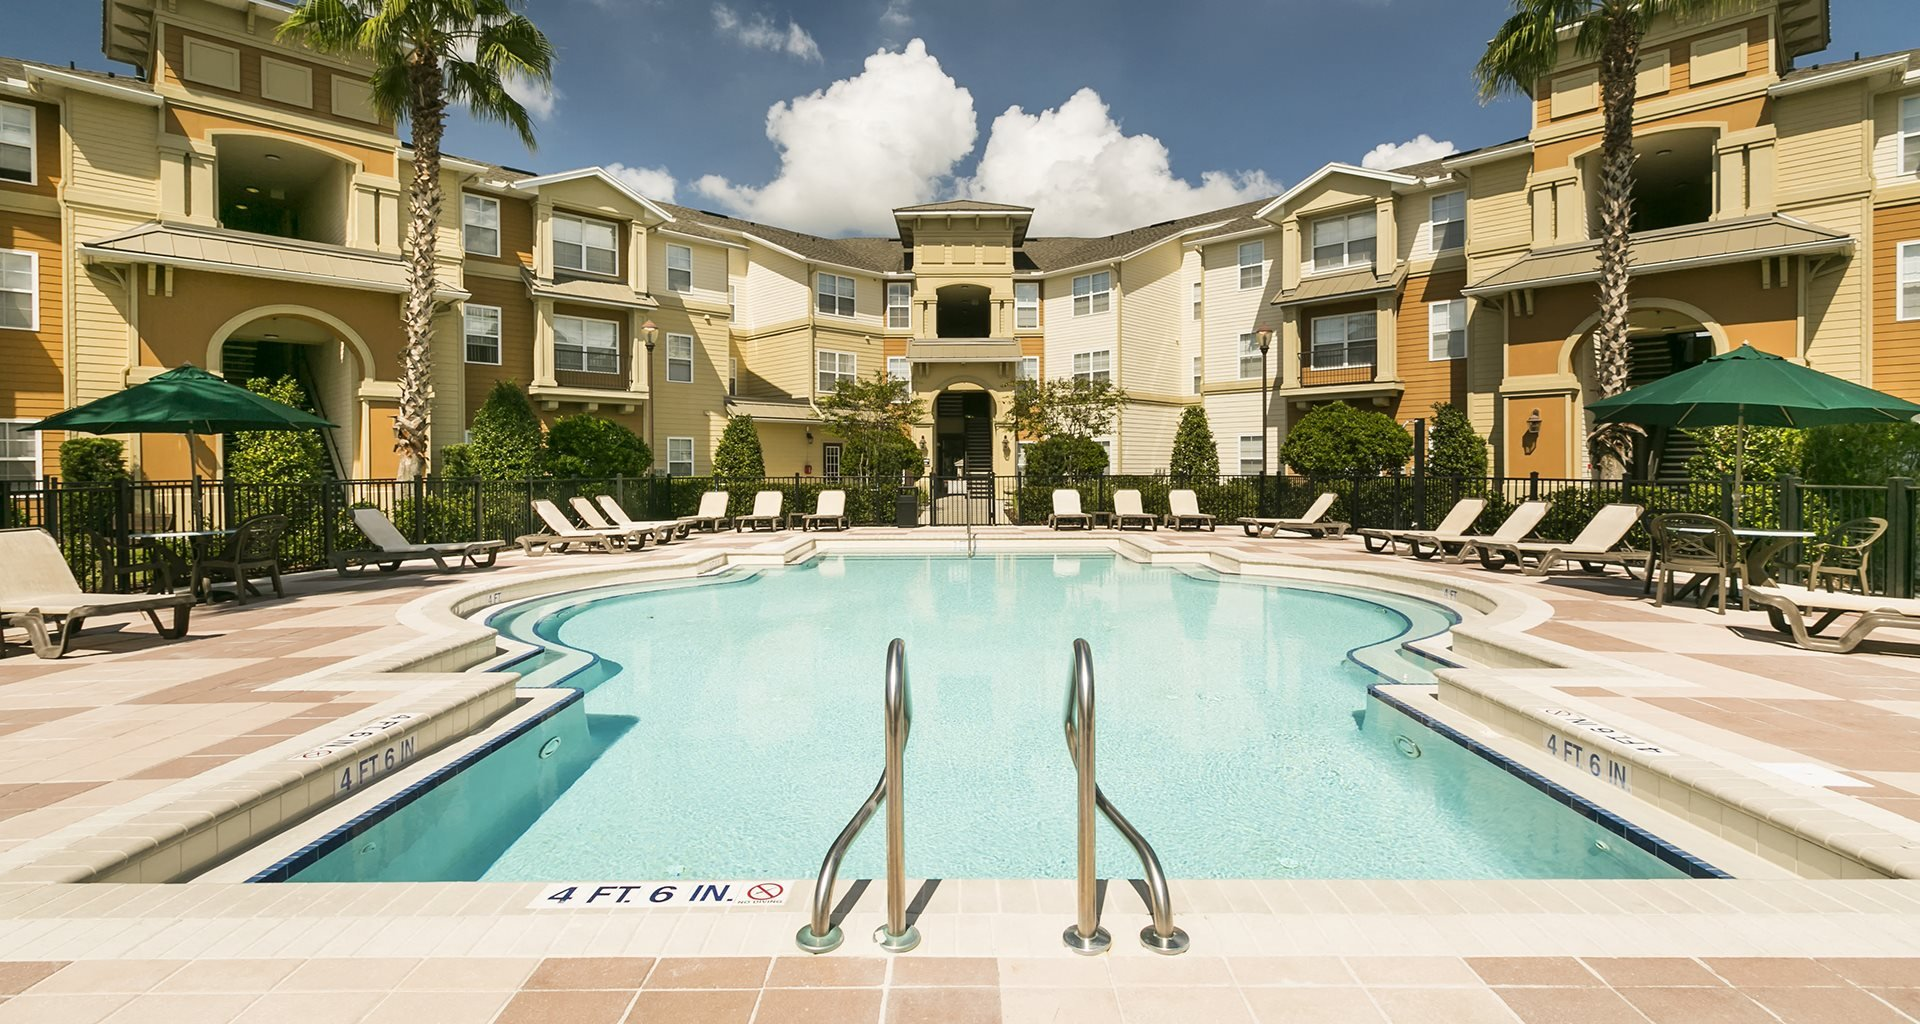 Fairview Cove Apartments for rent in Tampa, FL. Make this community your new home or visit other Concord Rents communities at ConcordRents.com. Pool